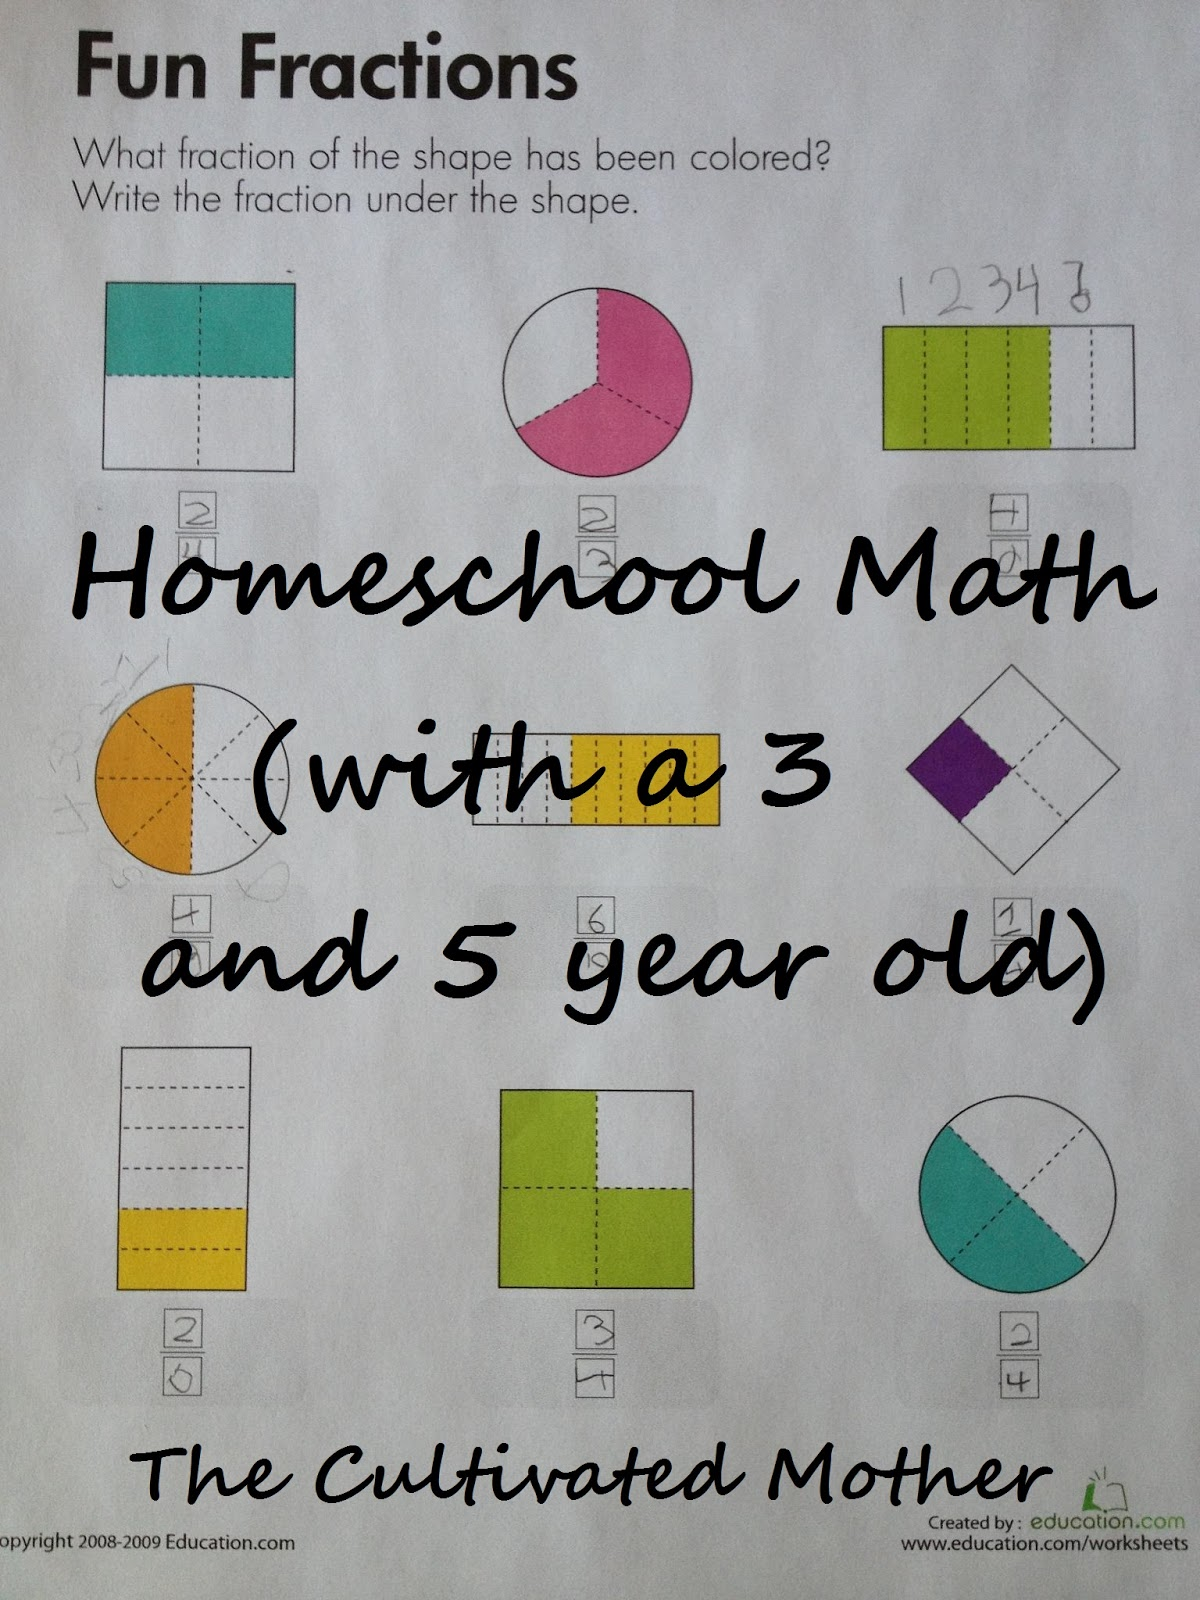 The Cultivated Mother: Homeschool Math (with a 3 and 5 year old)